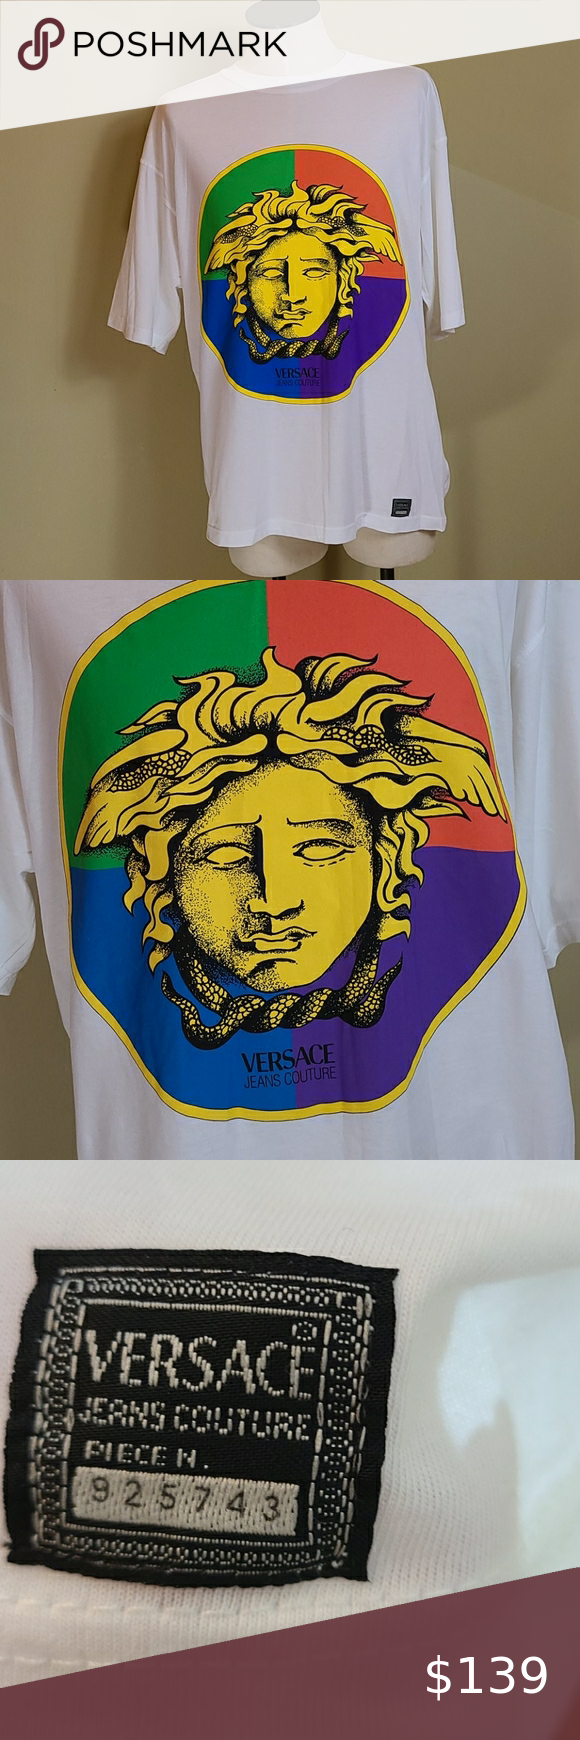 Gianni Versace Jeans Couture Logo T Shirt Medium Versace Jeans Couture Versace Jeans Versace T Shirt